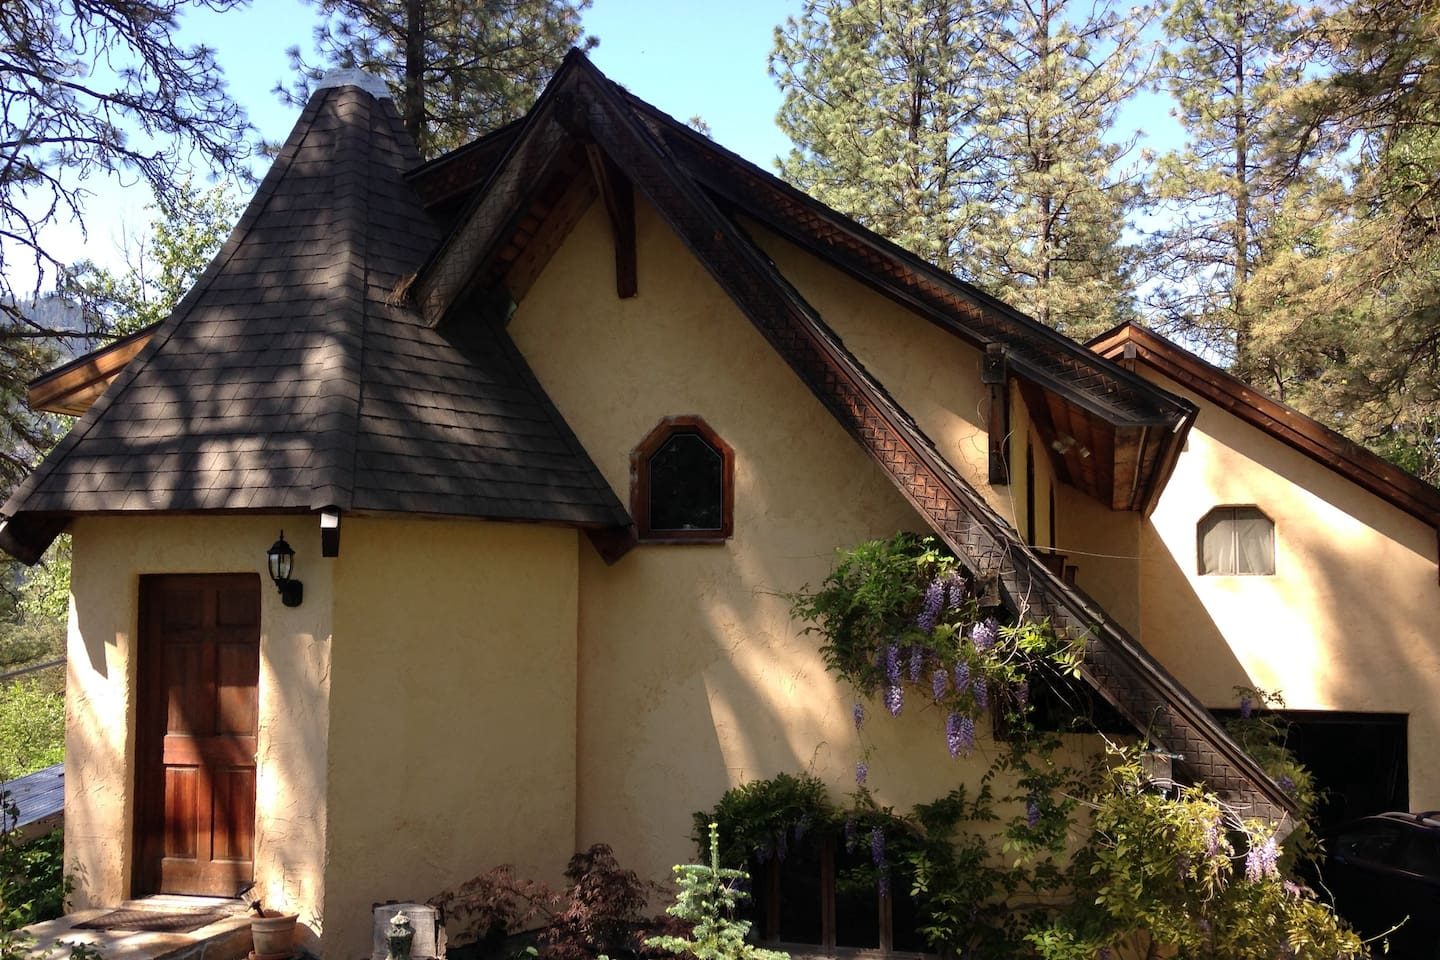 Garden suite just 5 minutes from Leavenworth - Guest suites for Rent ...